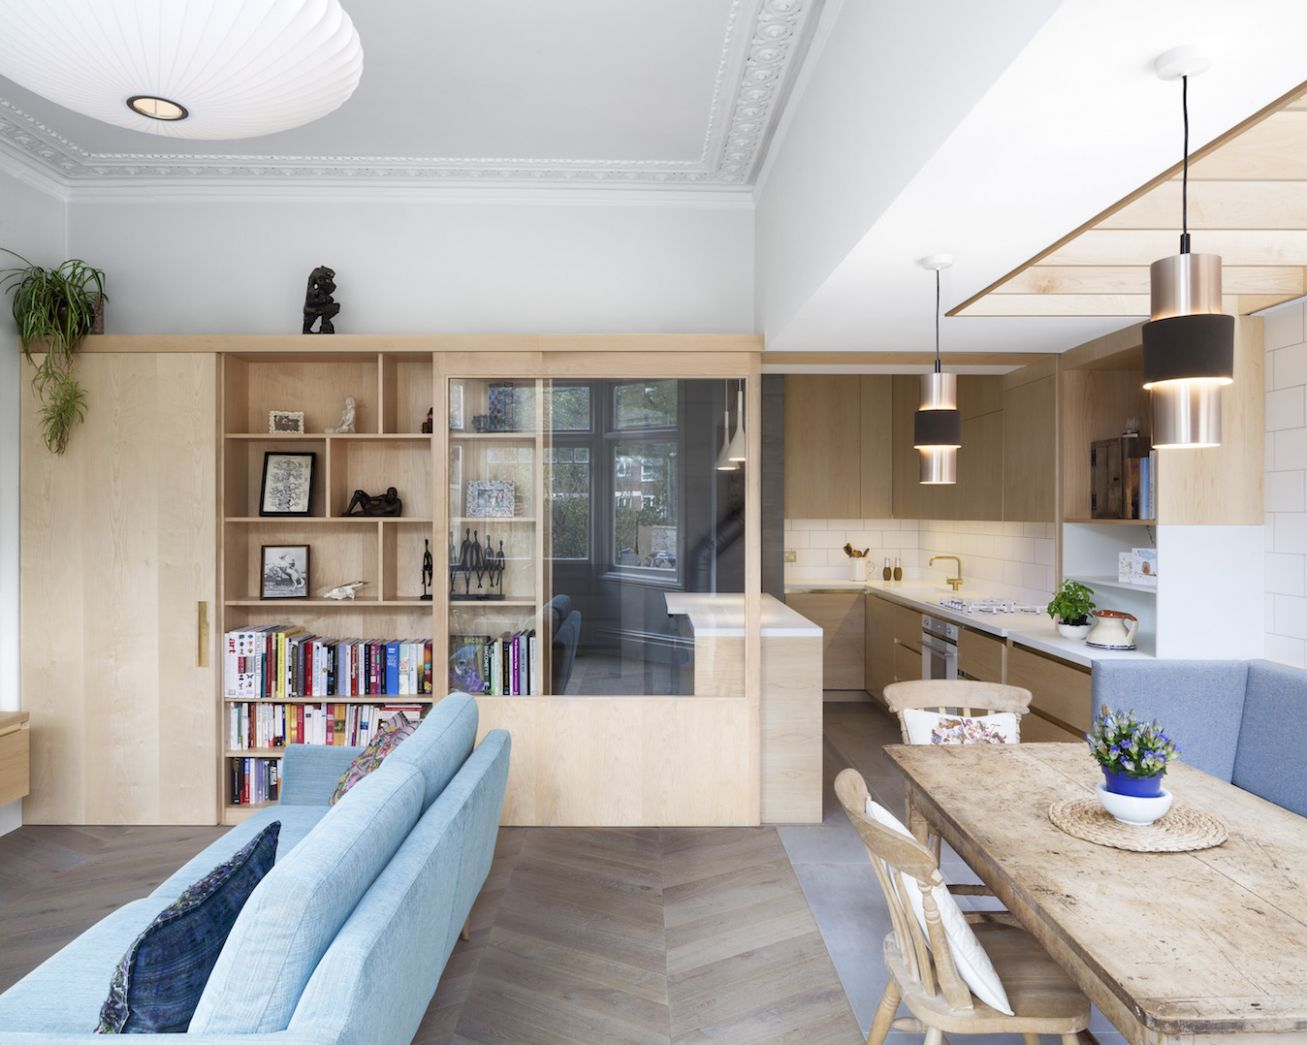 11 Clever Design Ideas For Small City Apartments - apartment design open plan